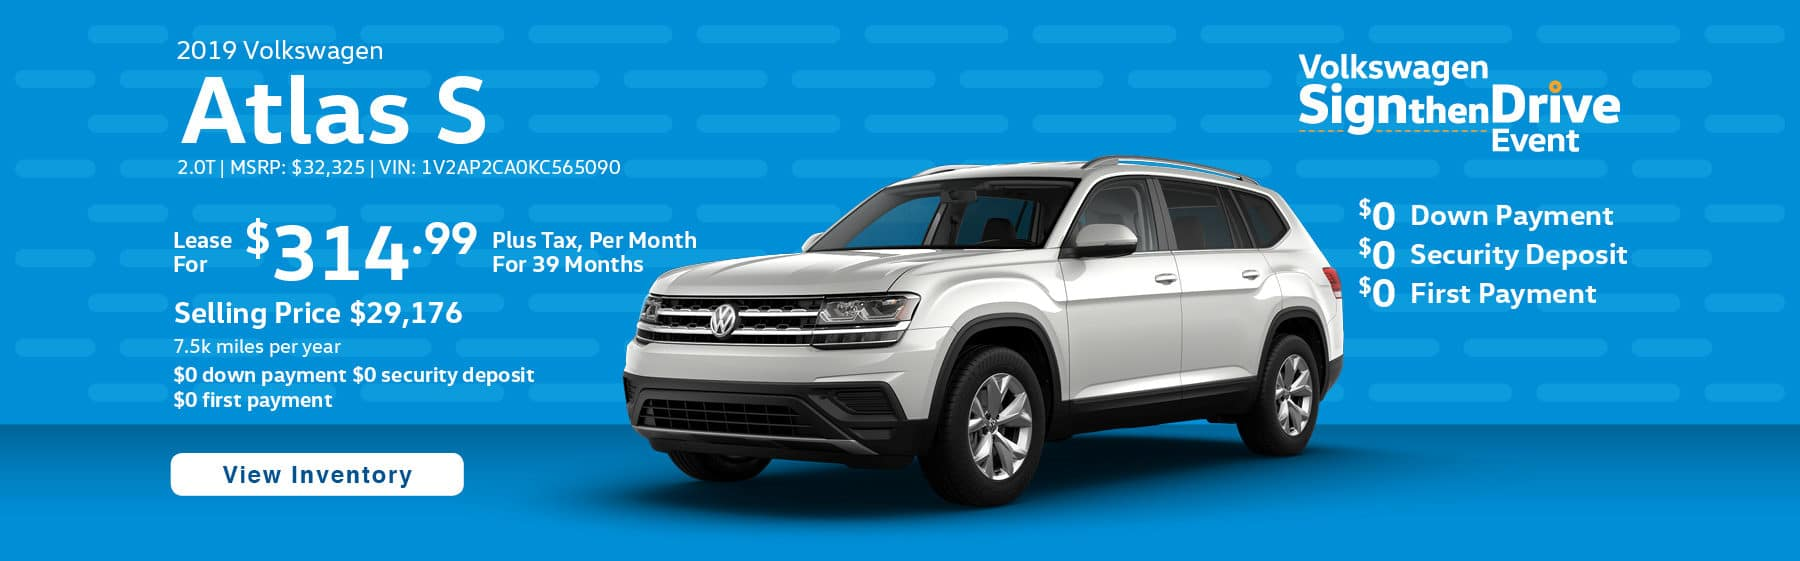 Lease the 2019 Atlas 2.0T S for $314.99 per month, plus tax for 39 months.